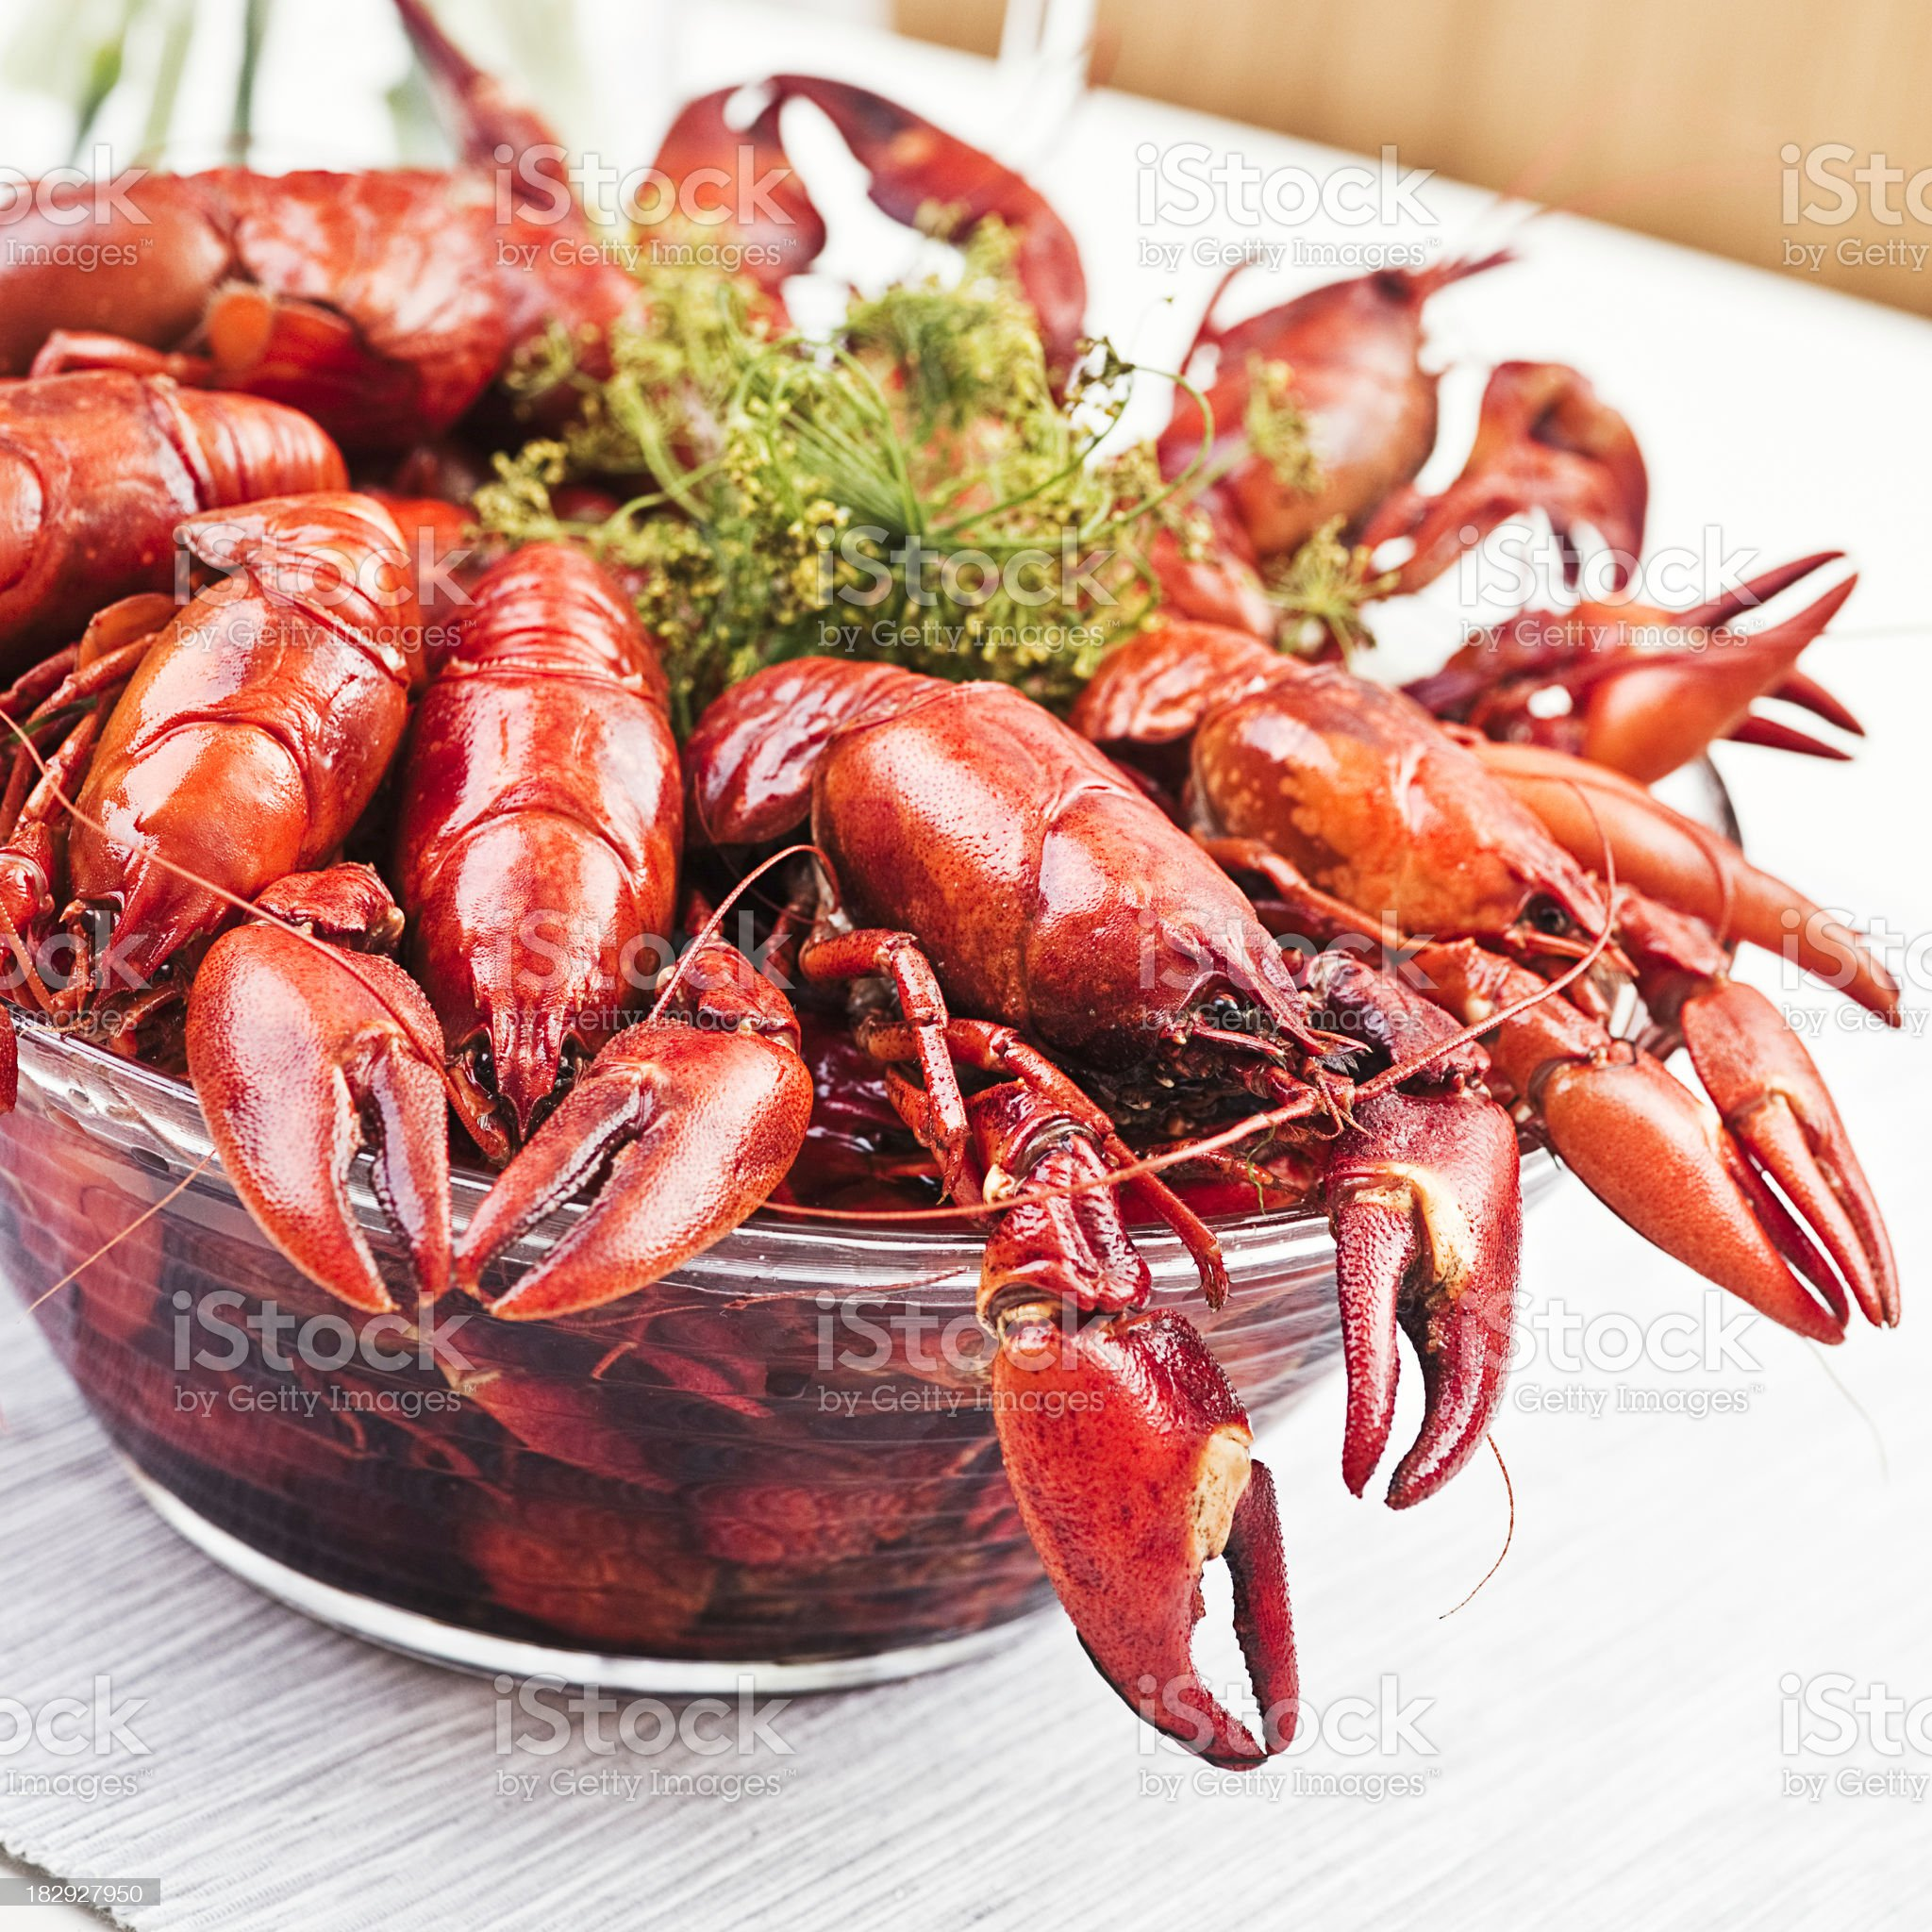 Cooked Crayfish royalty-free stock photo